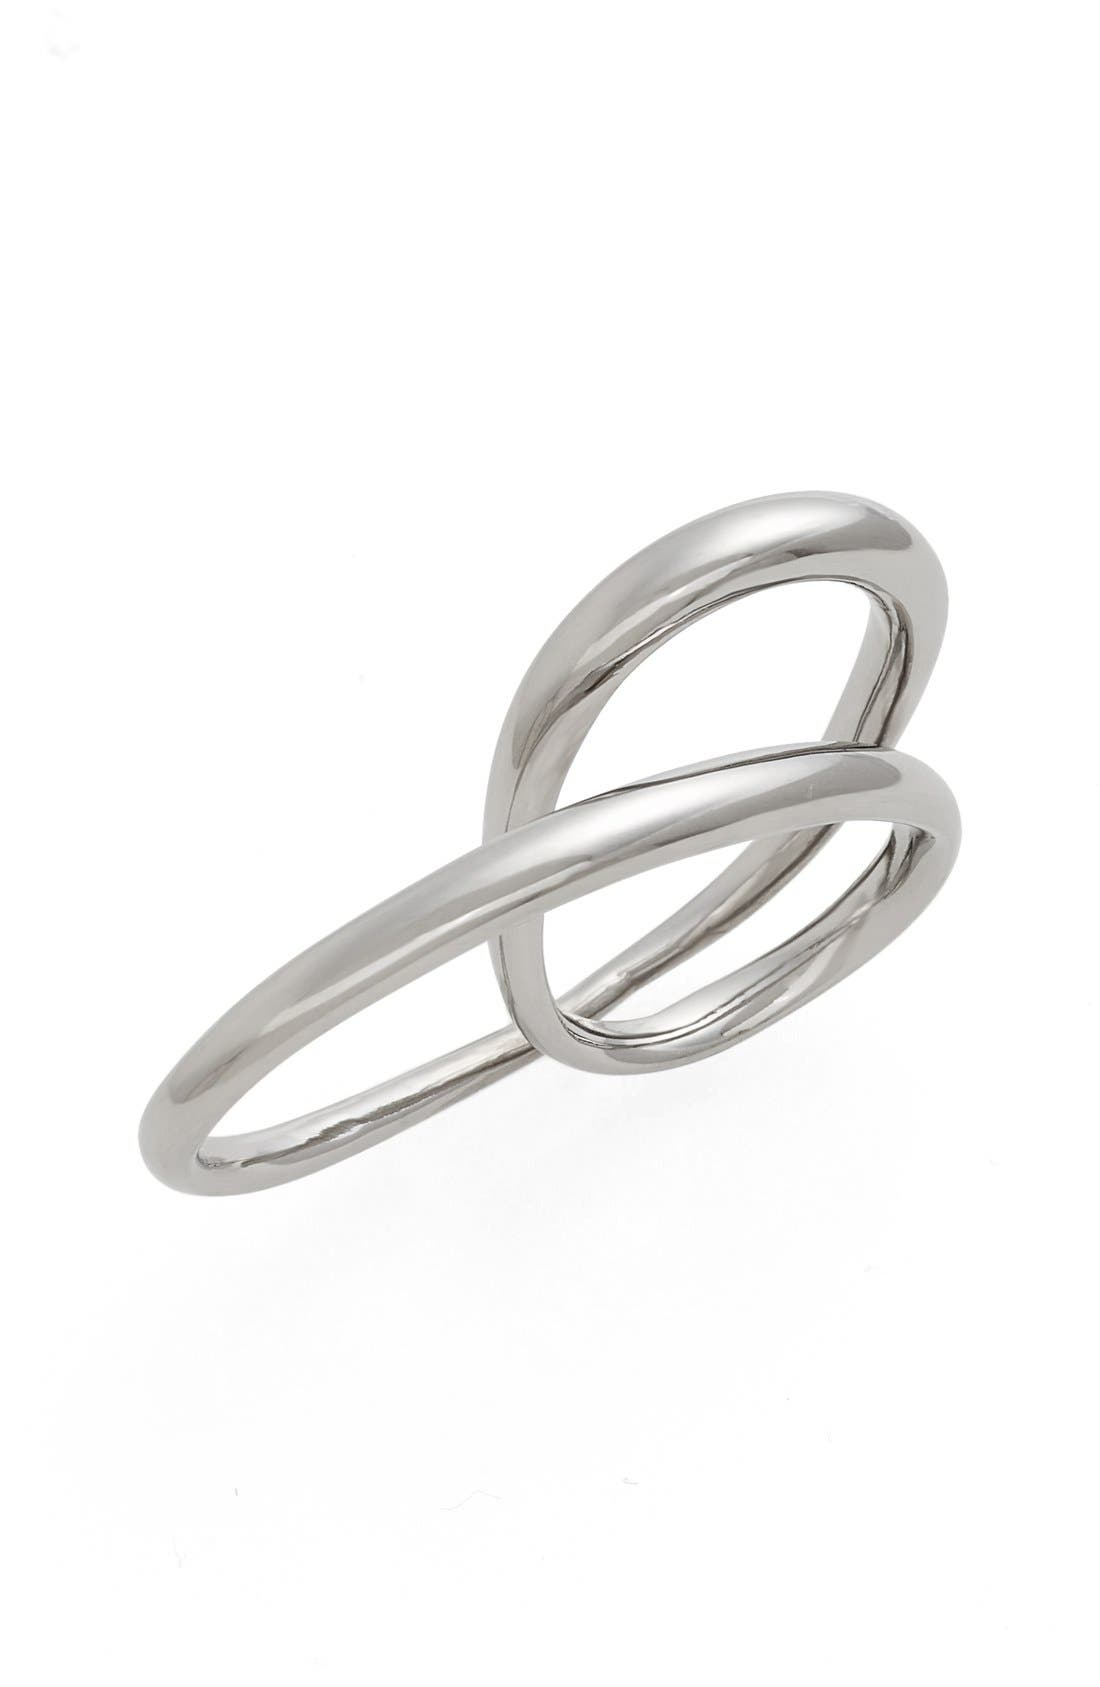 'Heart' Ring,                         Main,                         color, ARGENT